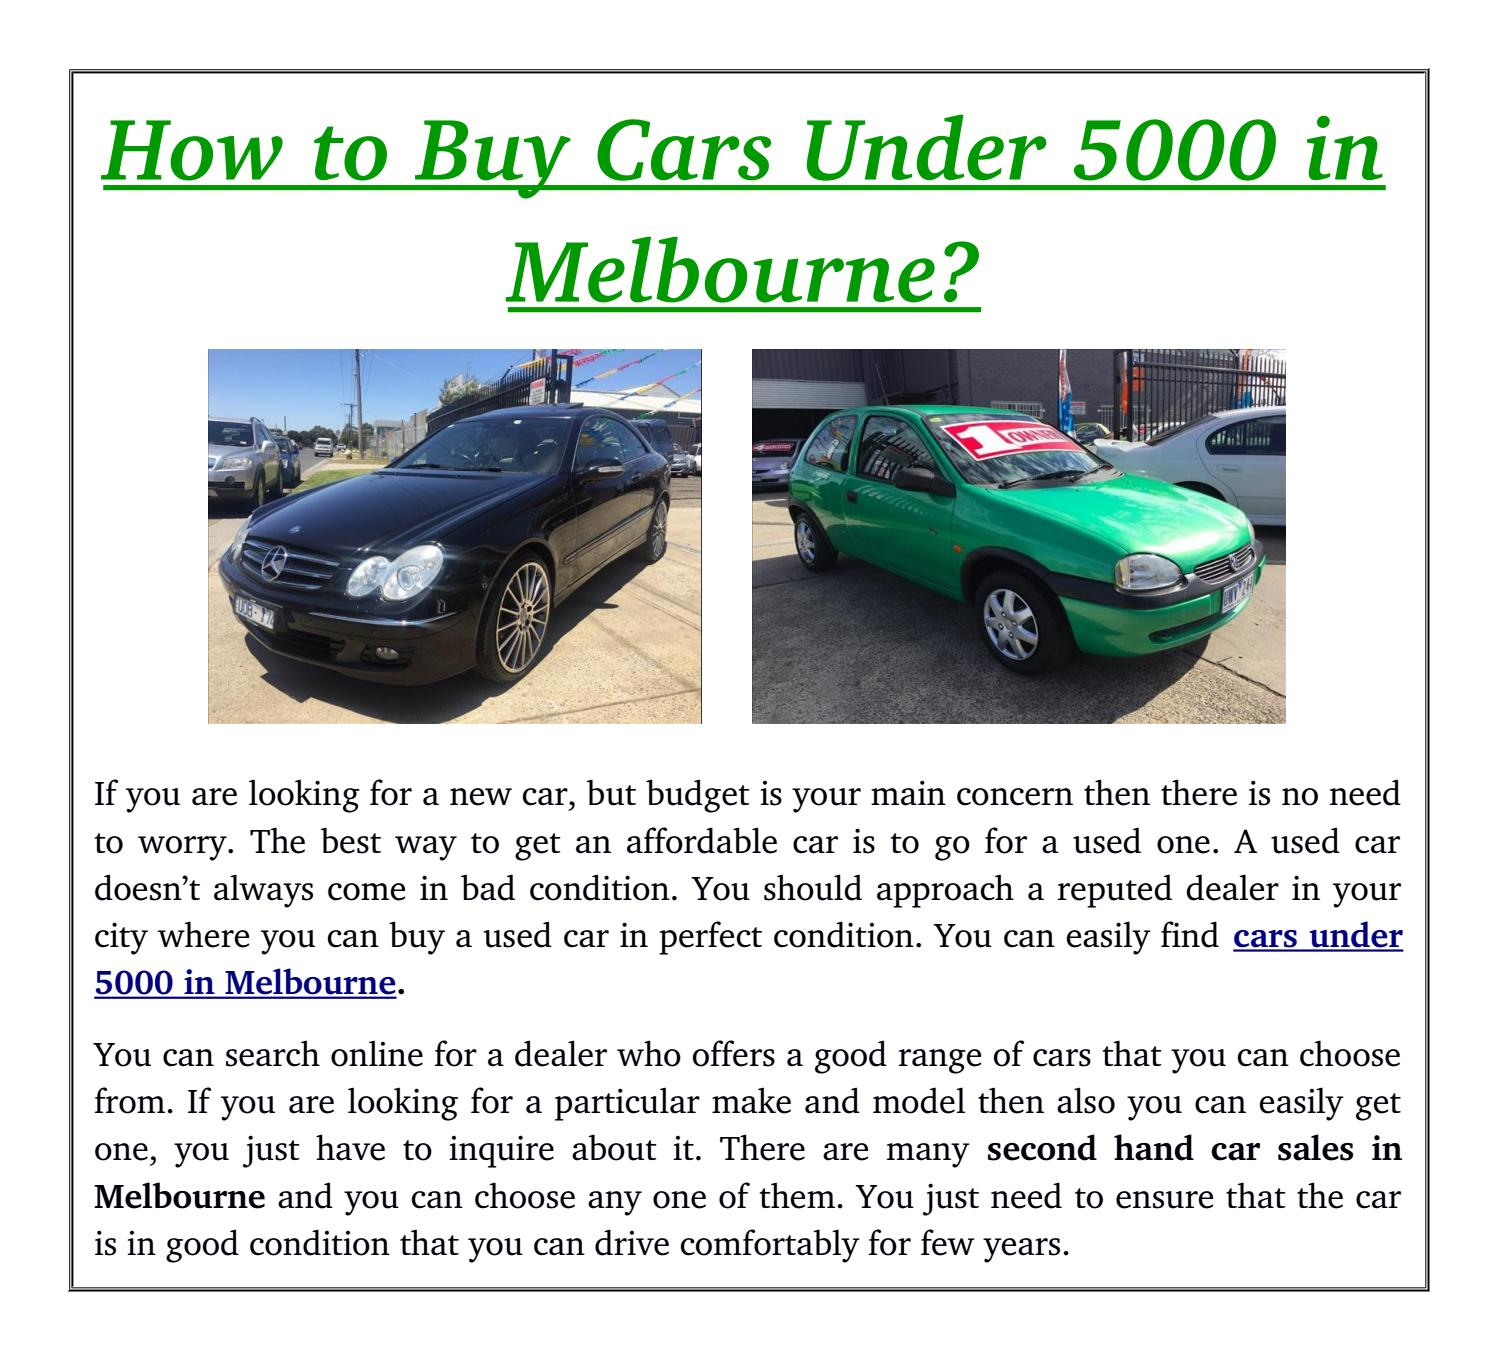 Acura Dealer In Brooklyn: Unique Looking For A Used Car